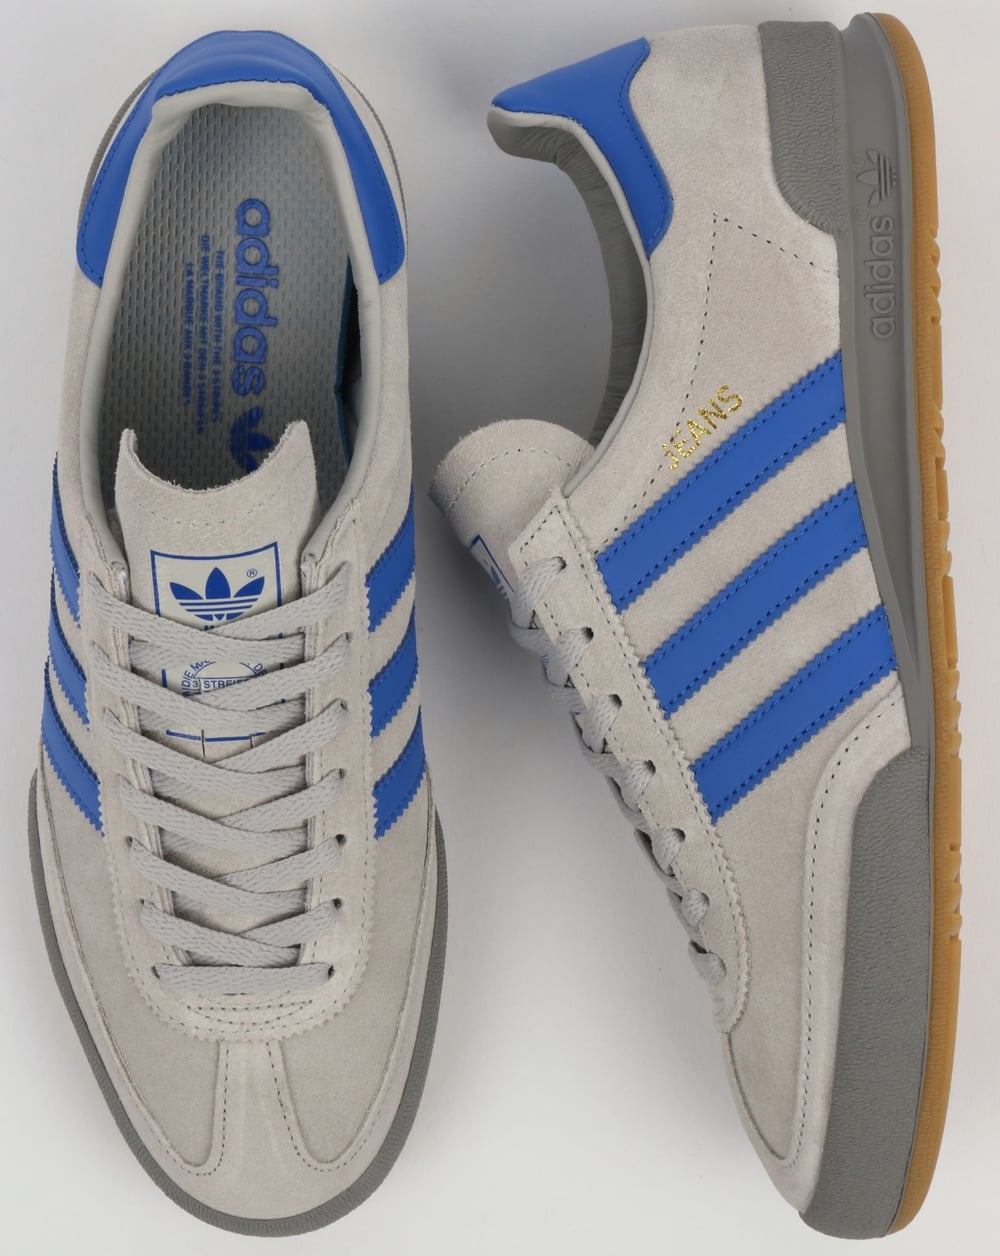 Trainers Jeans Blue Adidas Mk2 Greyhi Res OPk0wn